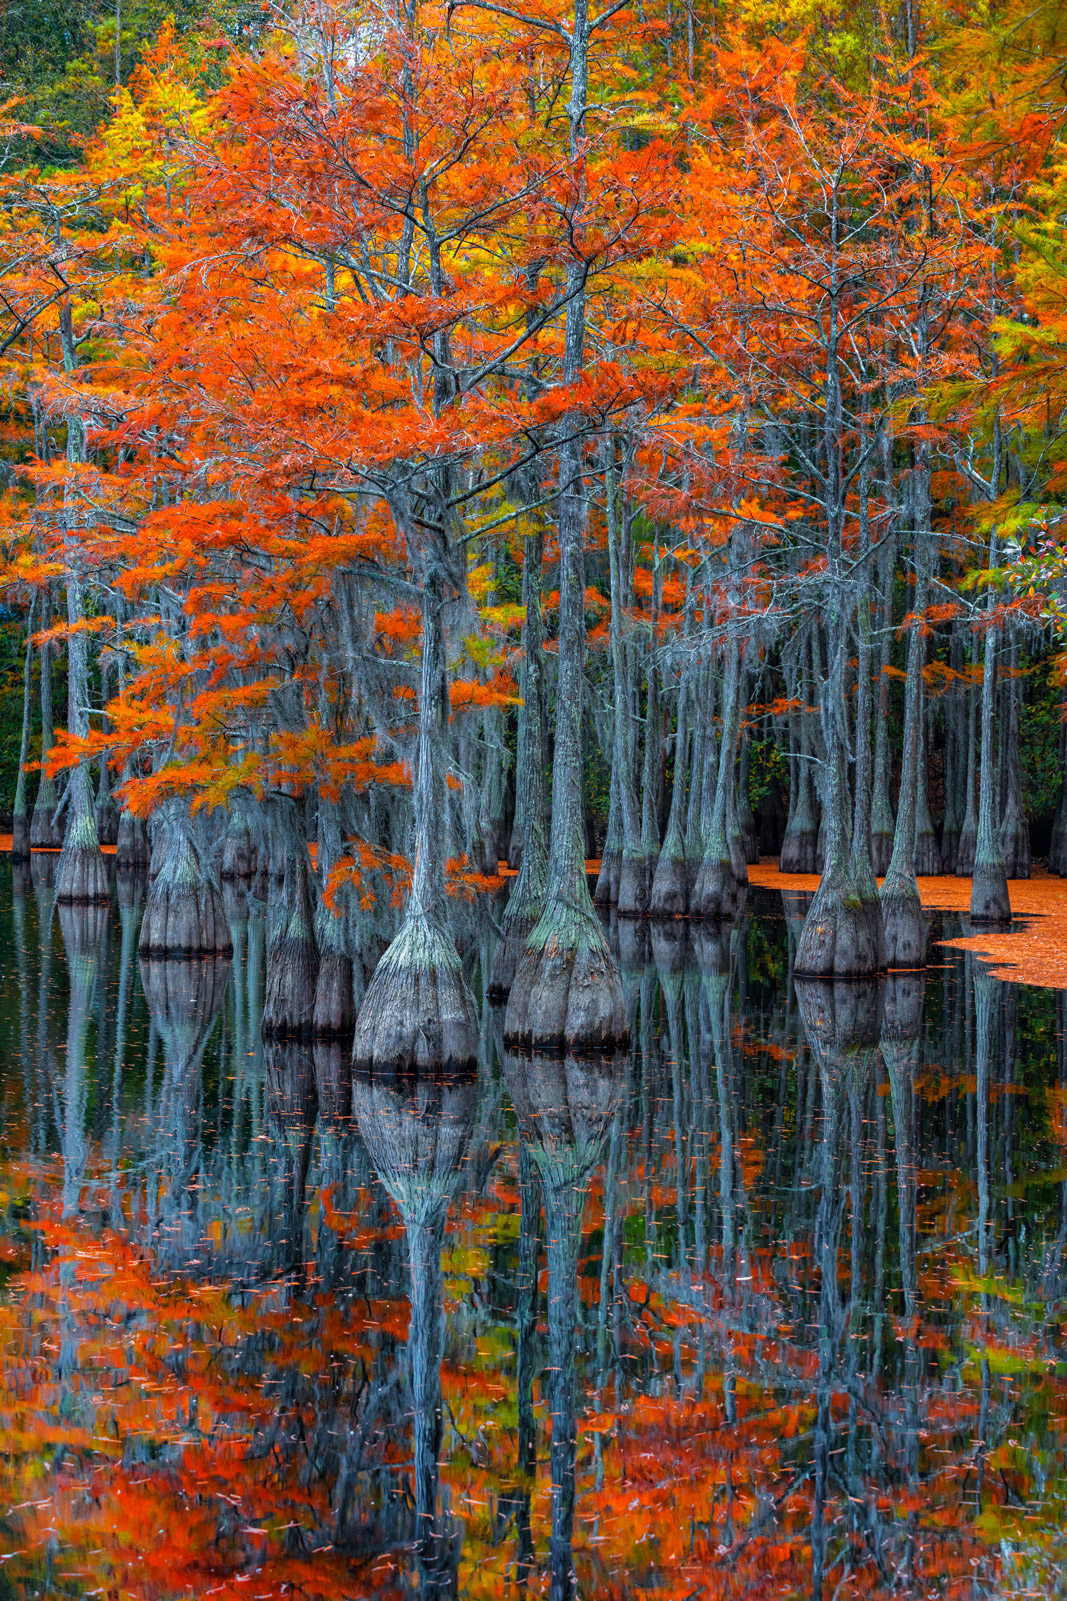 A Limited Edition, Fine Art photograph of the reflections in the water of cypress trees displaying fall colors in a cypress swamp...